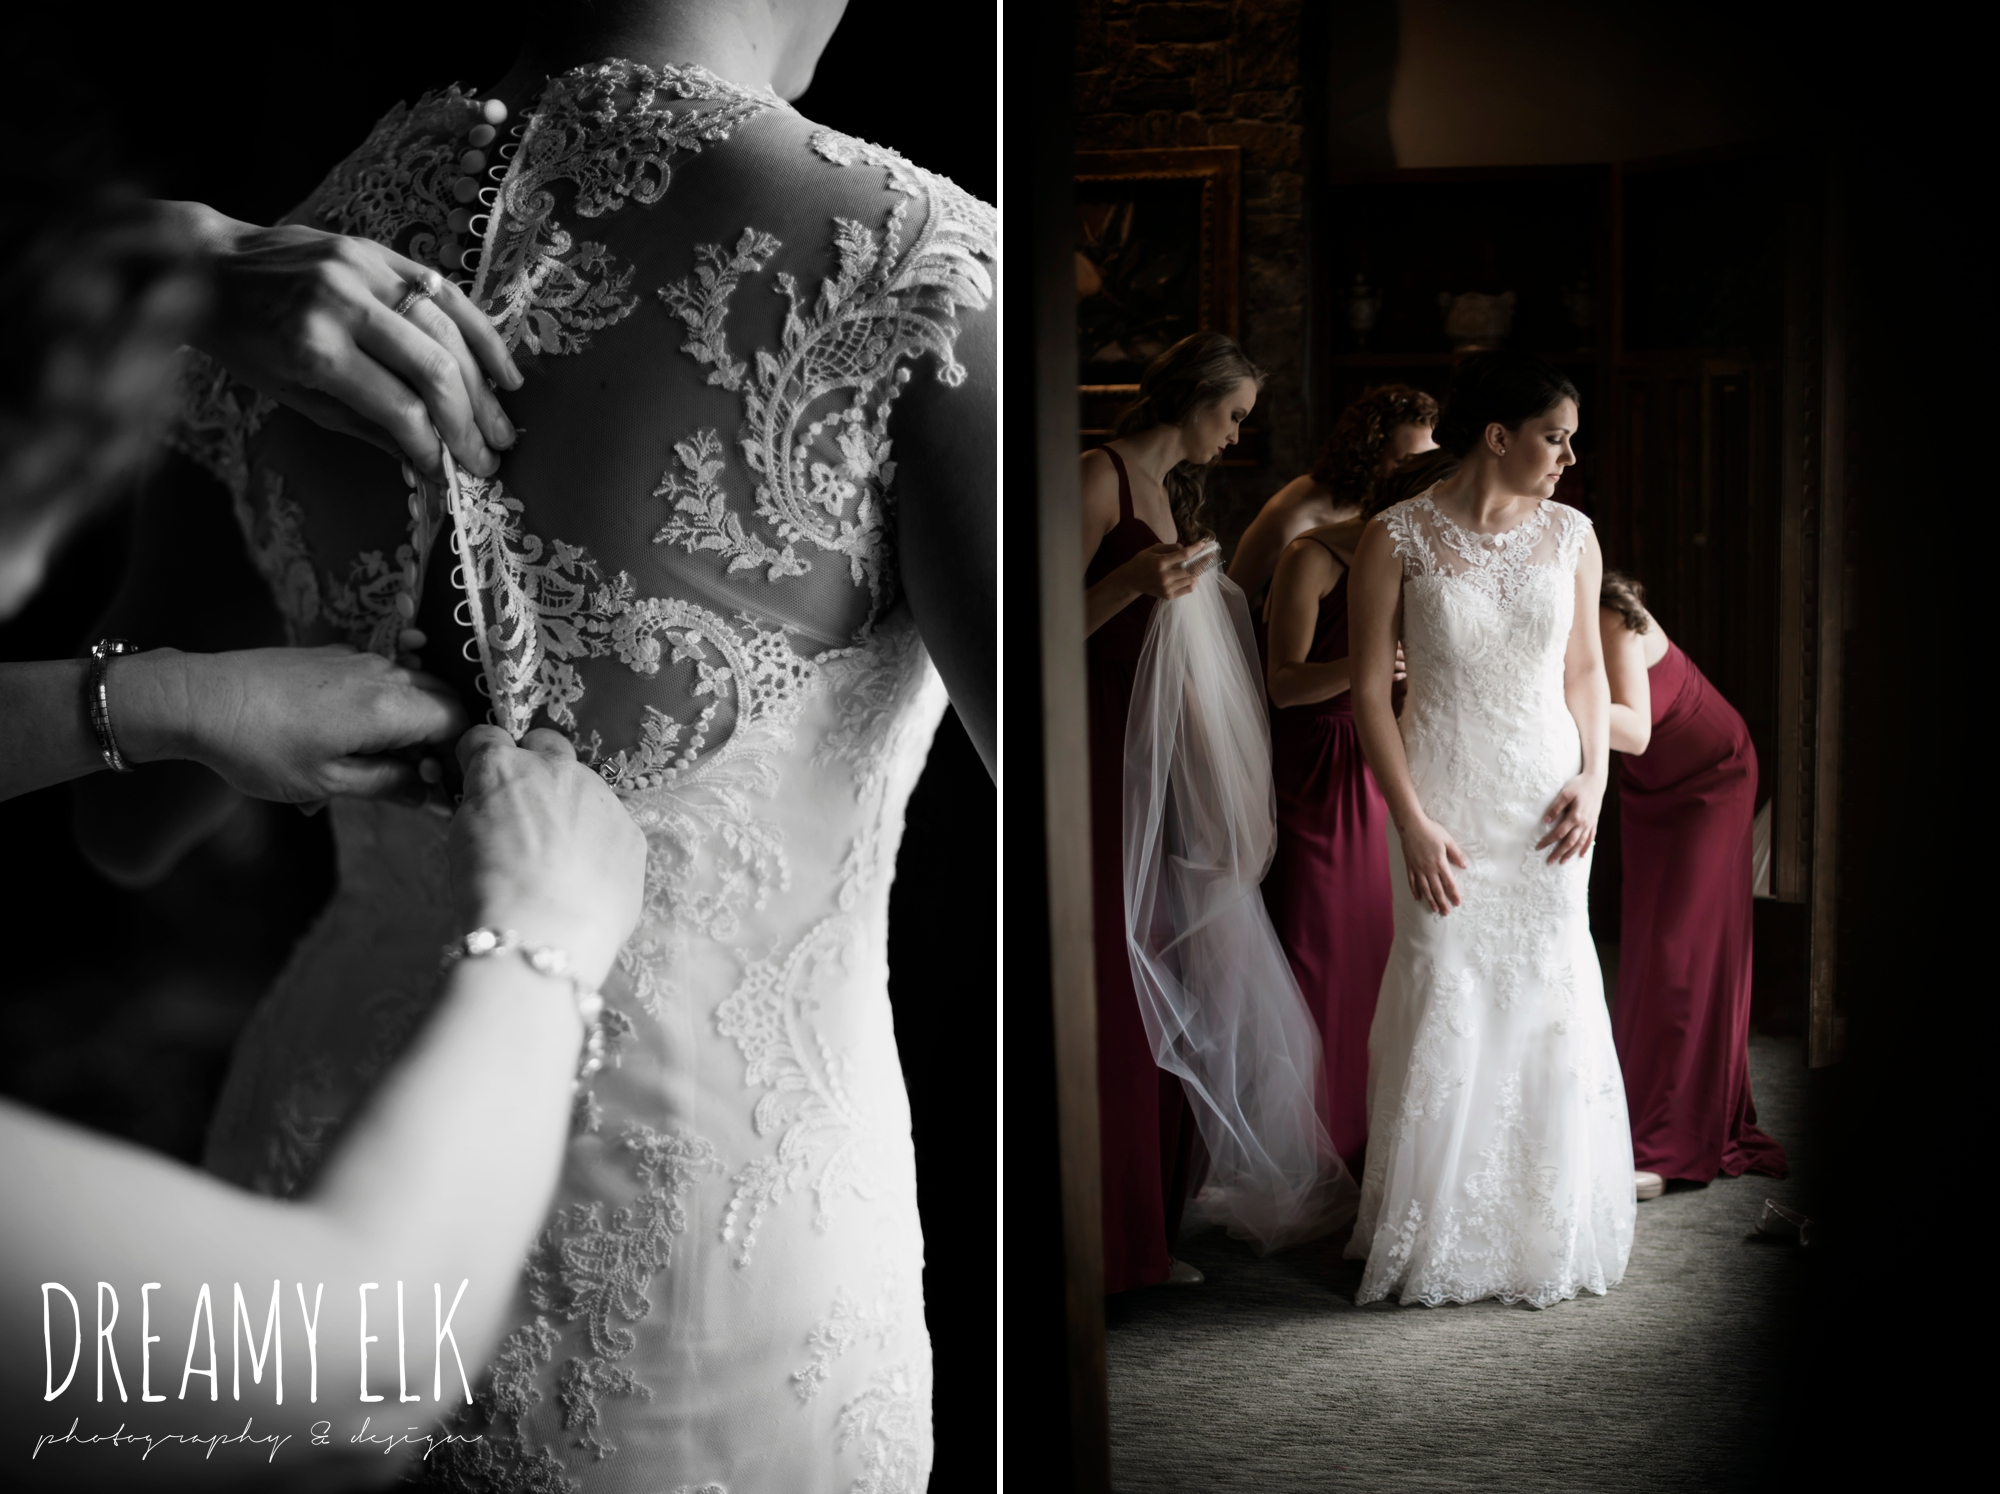 casa blanca illusion lace wedding dress with button from lulus bridal, bride getting dressed, maroon december winter wedding, bella donna chapel, mckinney, texas {dreamy elk photography and design}